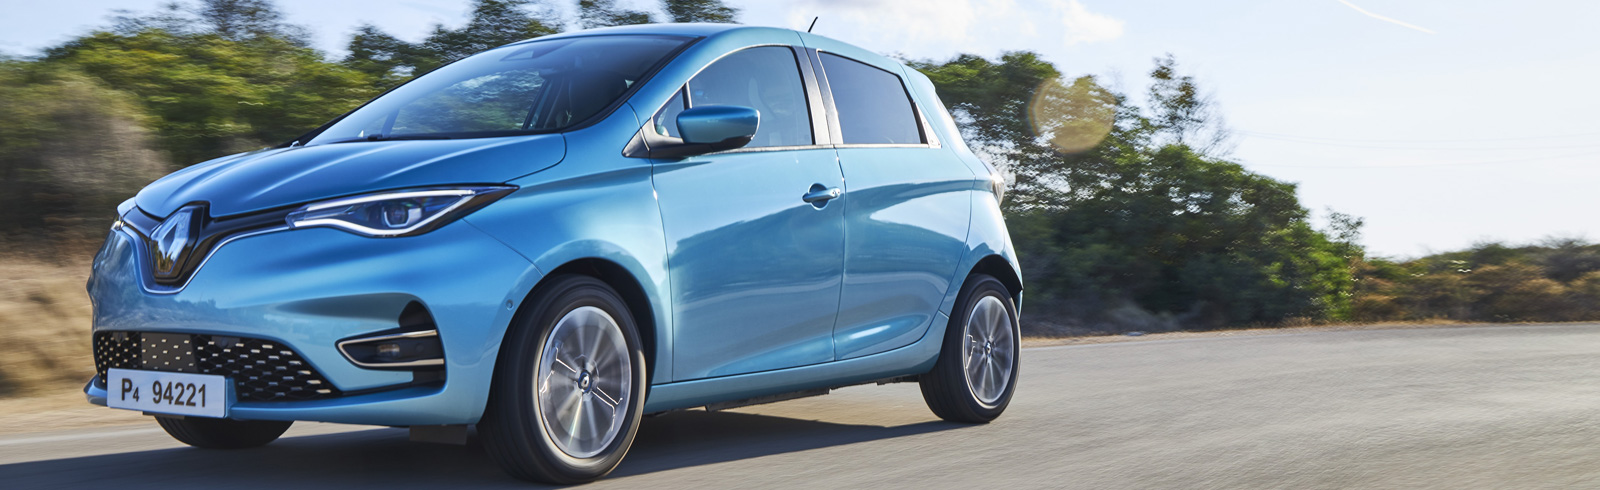 Renault will expand its range of EV models to cover more car segments